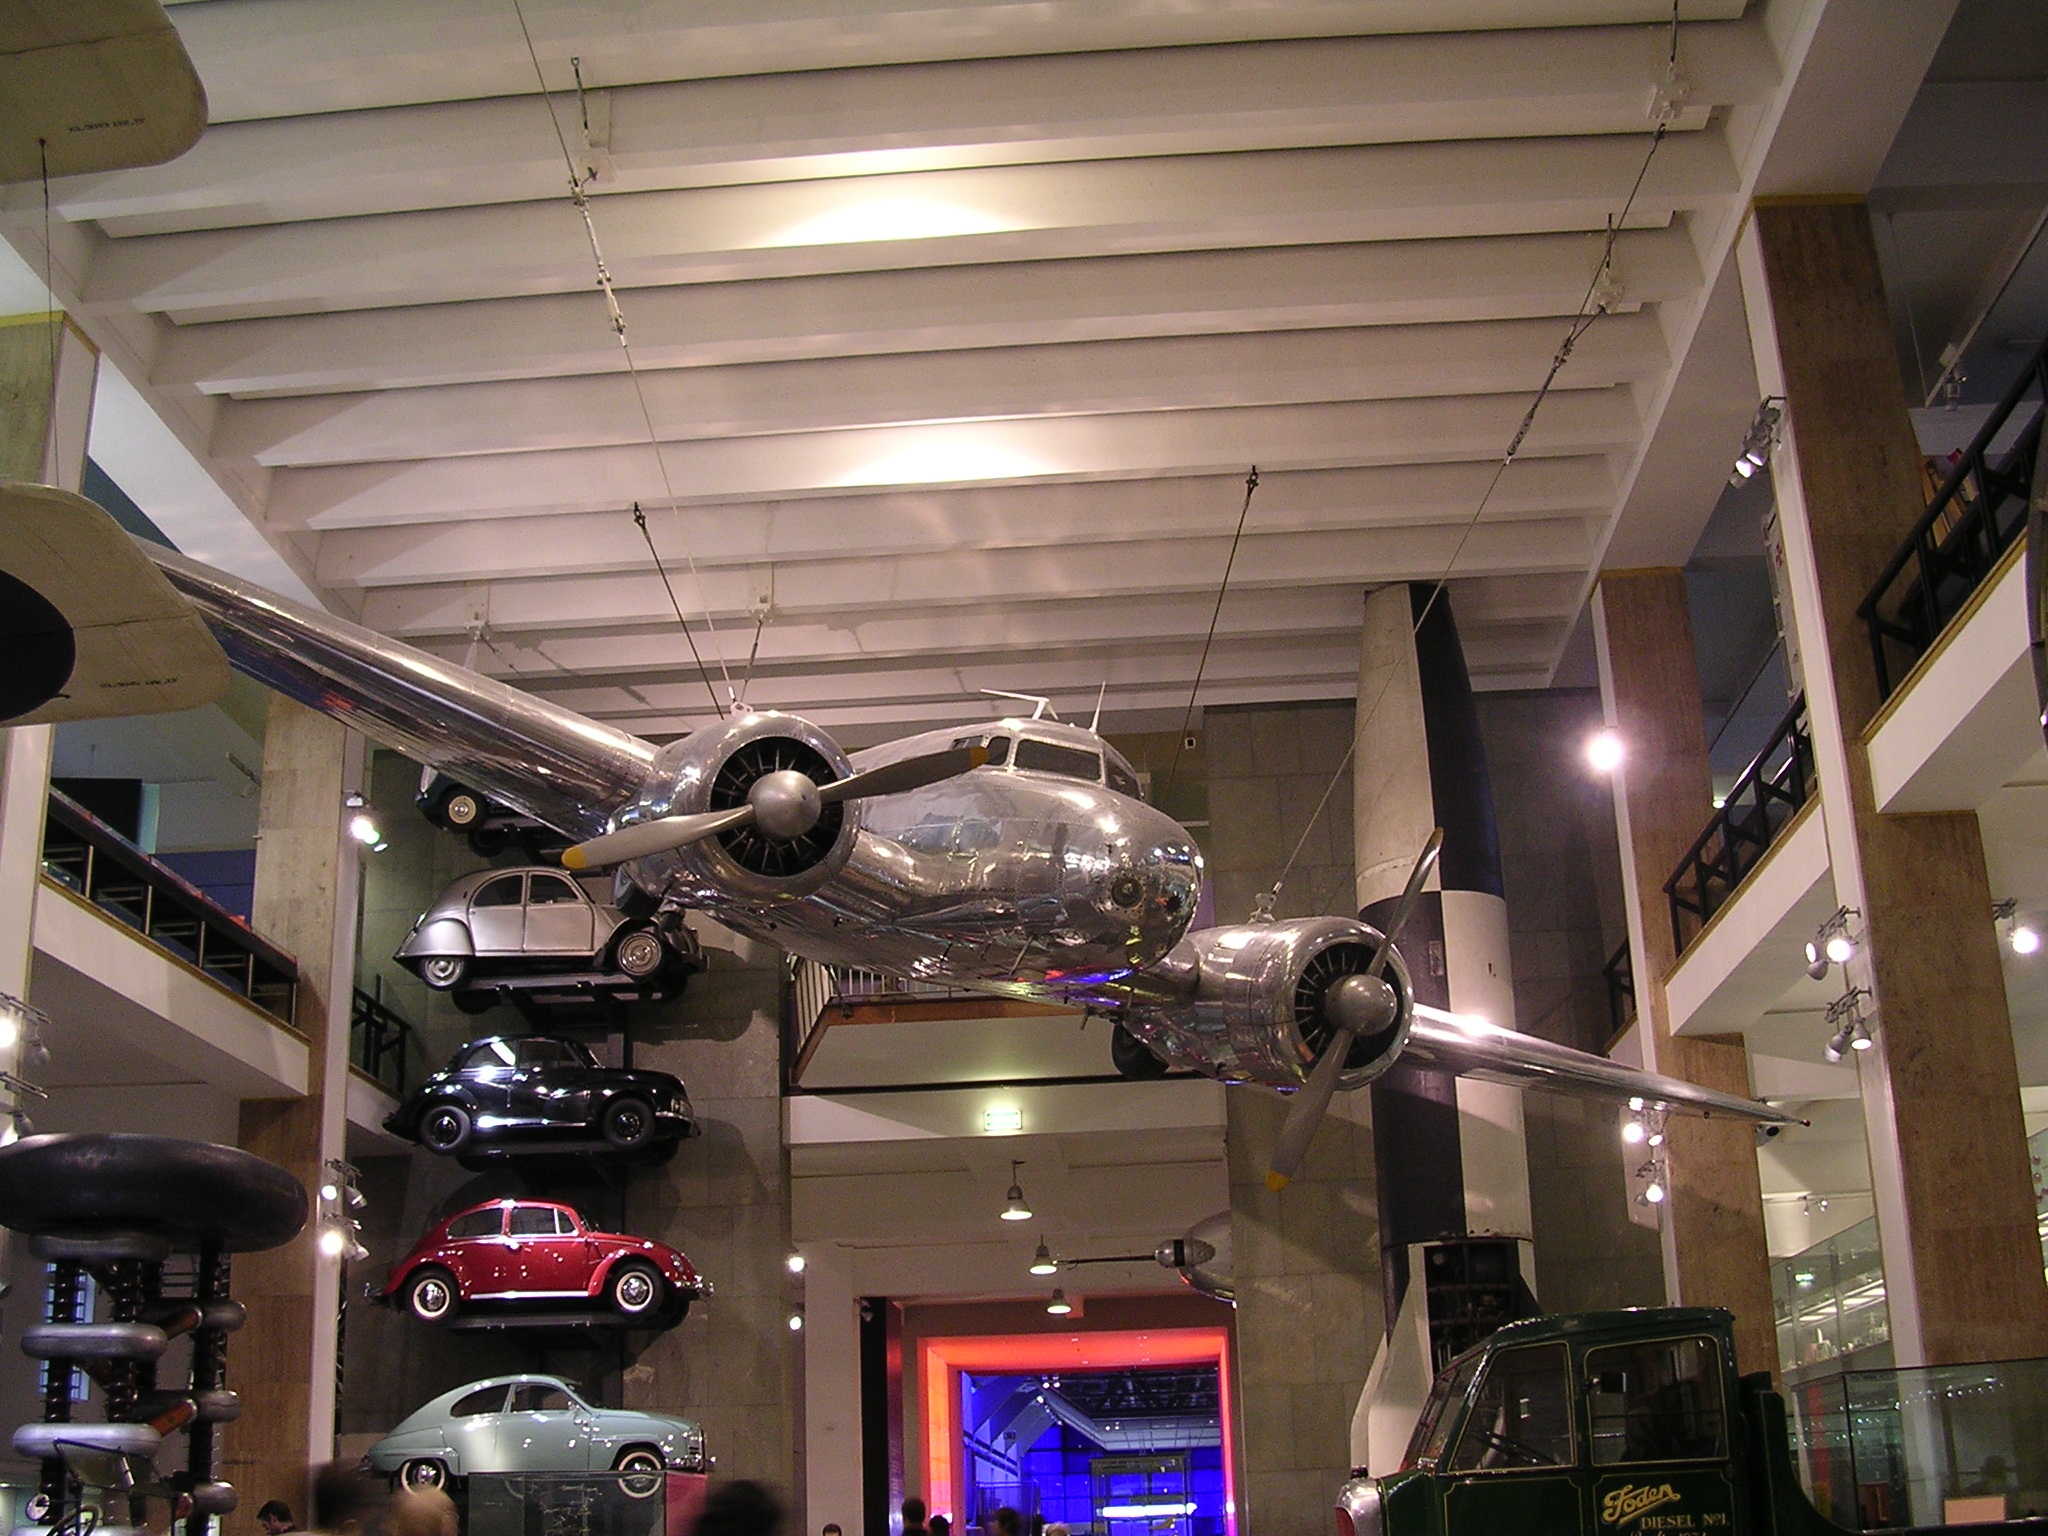 Plane_in_the_Science_Museum_of_London